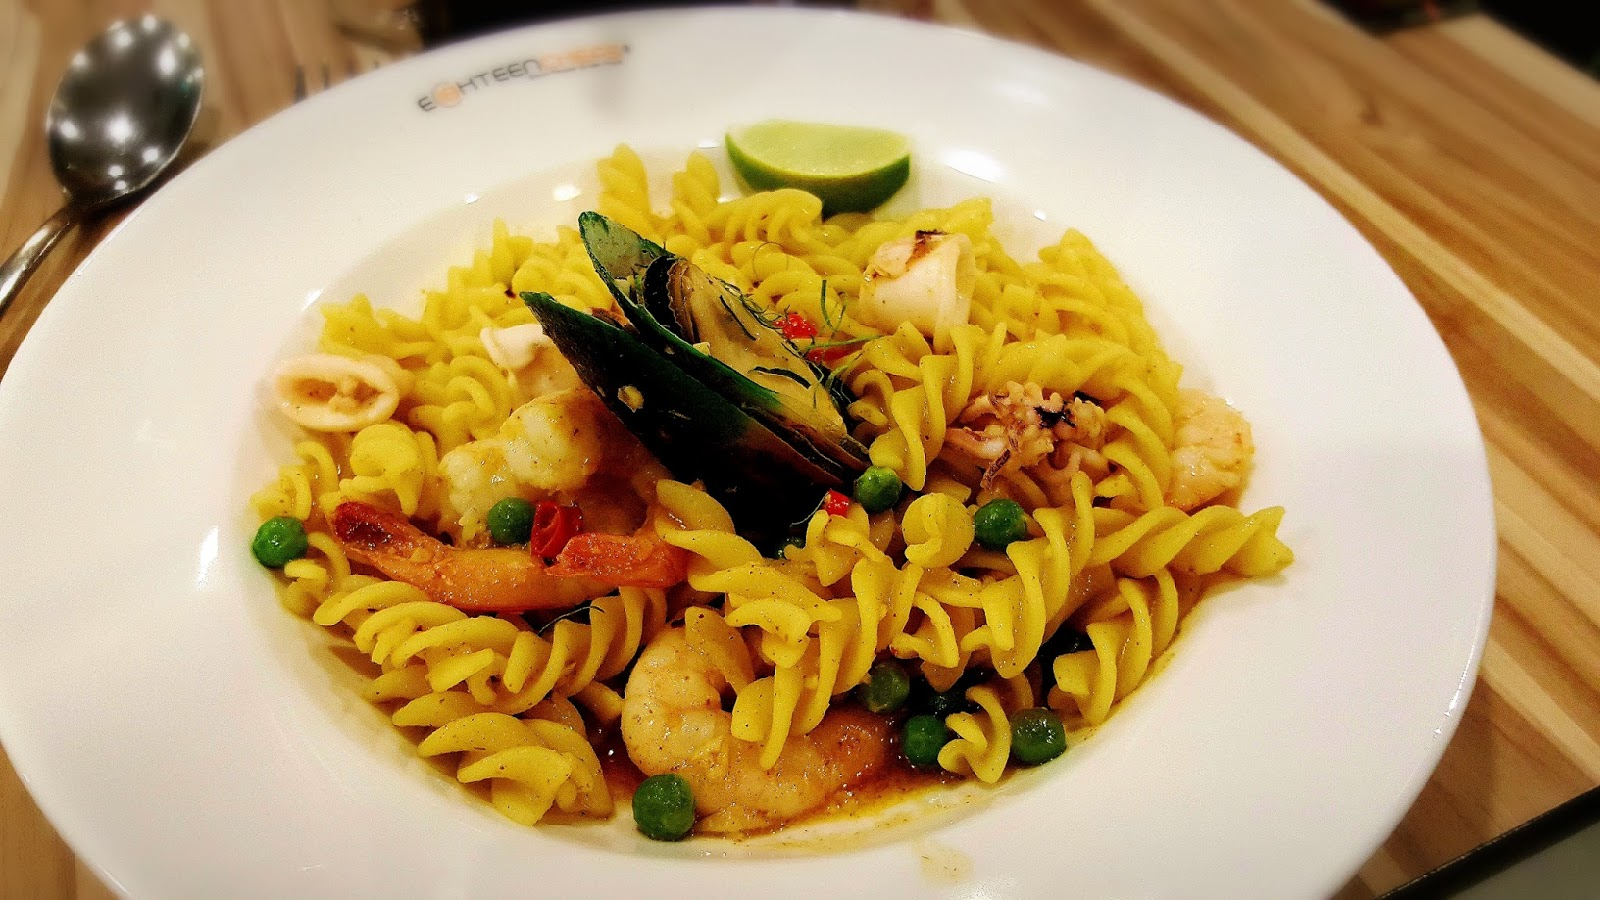 Food review eighteen chefs singapore - Yes Spicy This Is Spicy I Love It Though Mediocre Taste I Feel Light Having Fusilli Than Spaghetti Well I Still Love Spaghetti Esp Linguine